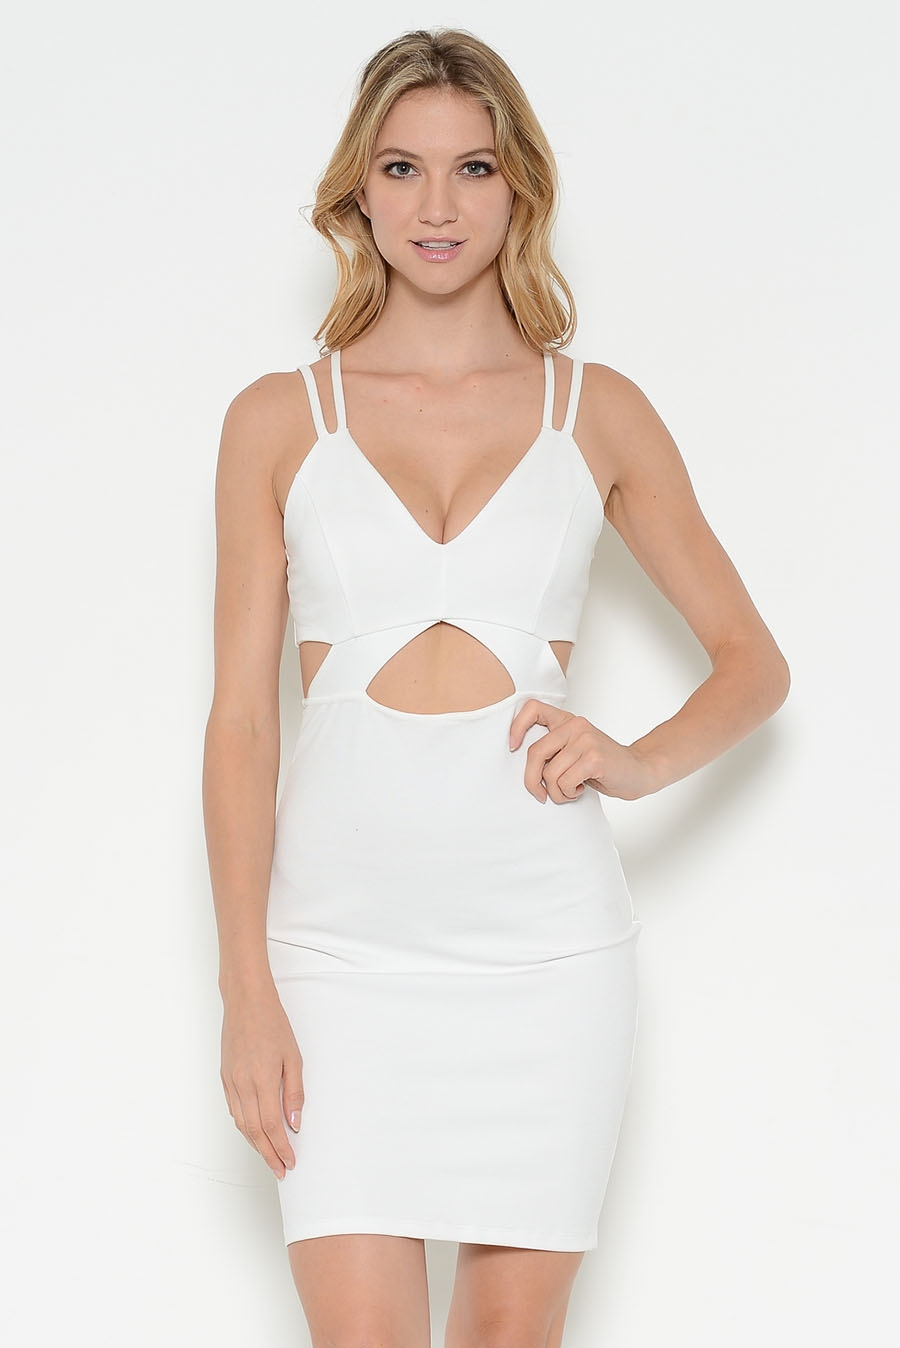 SIDE CUTOUT STRAPPY DRESS - orangeshine.com